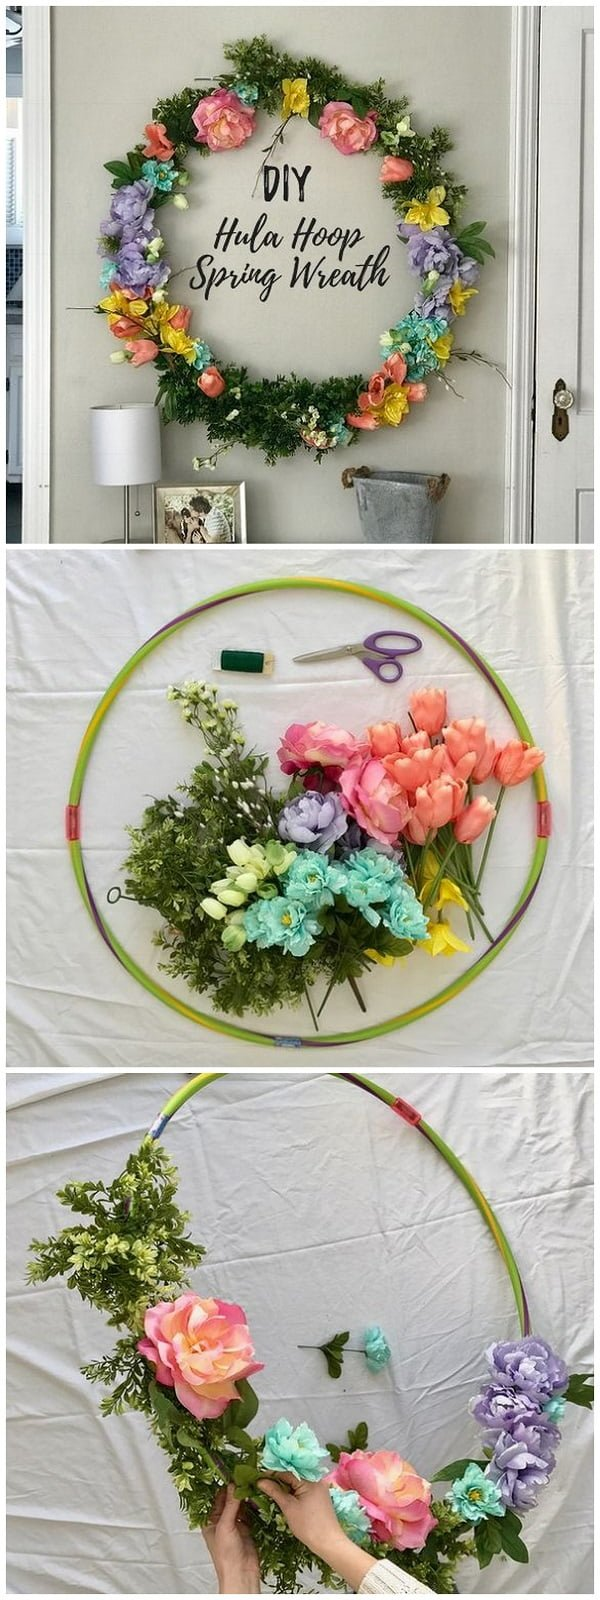 You have to see this tutorial on how to make #DIY spring hula hoop wreath #HomeDecorIdeas